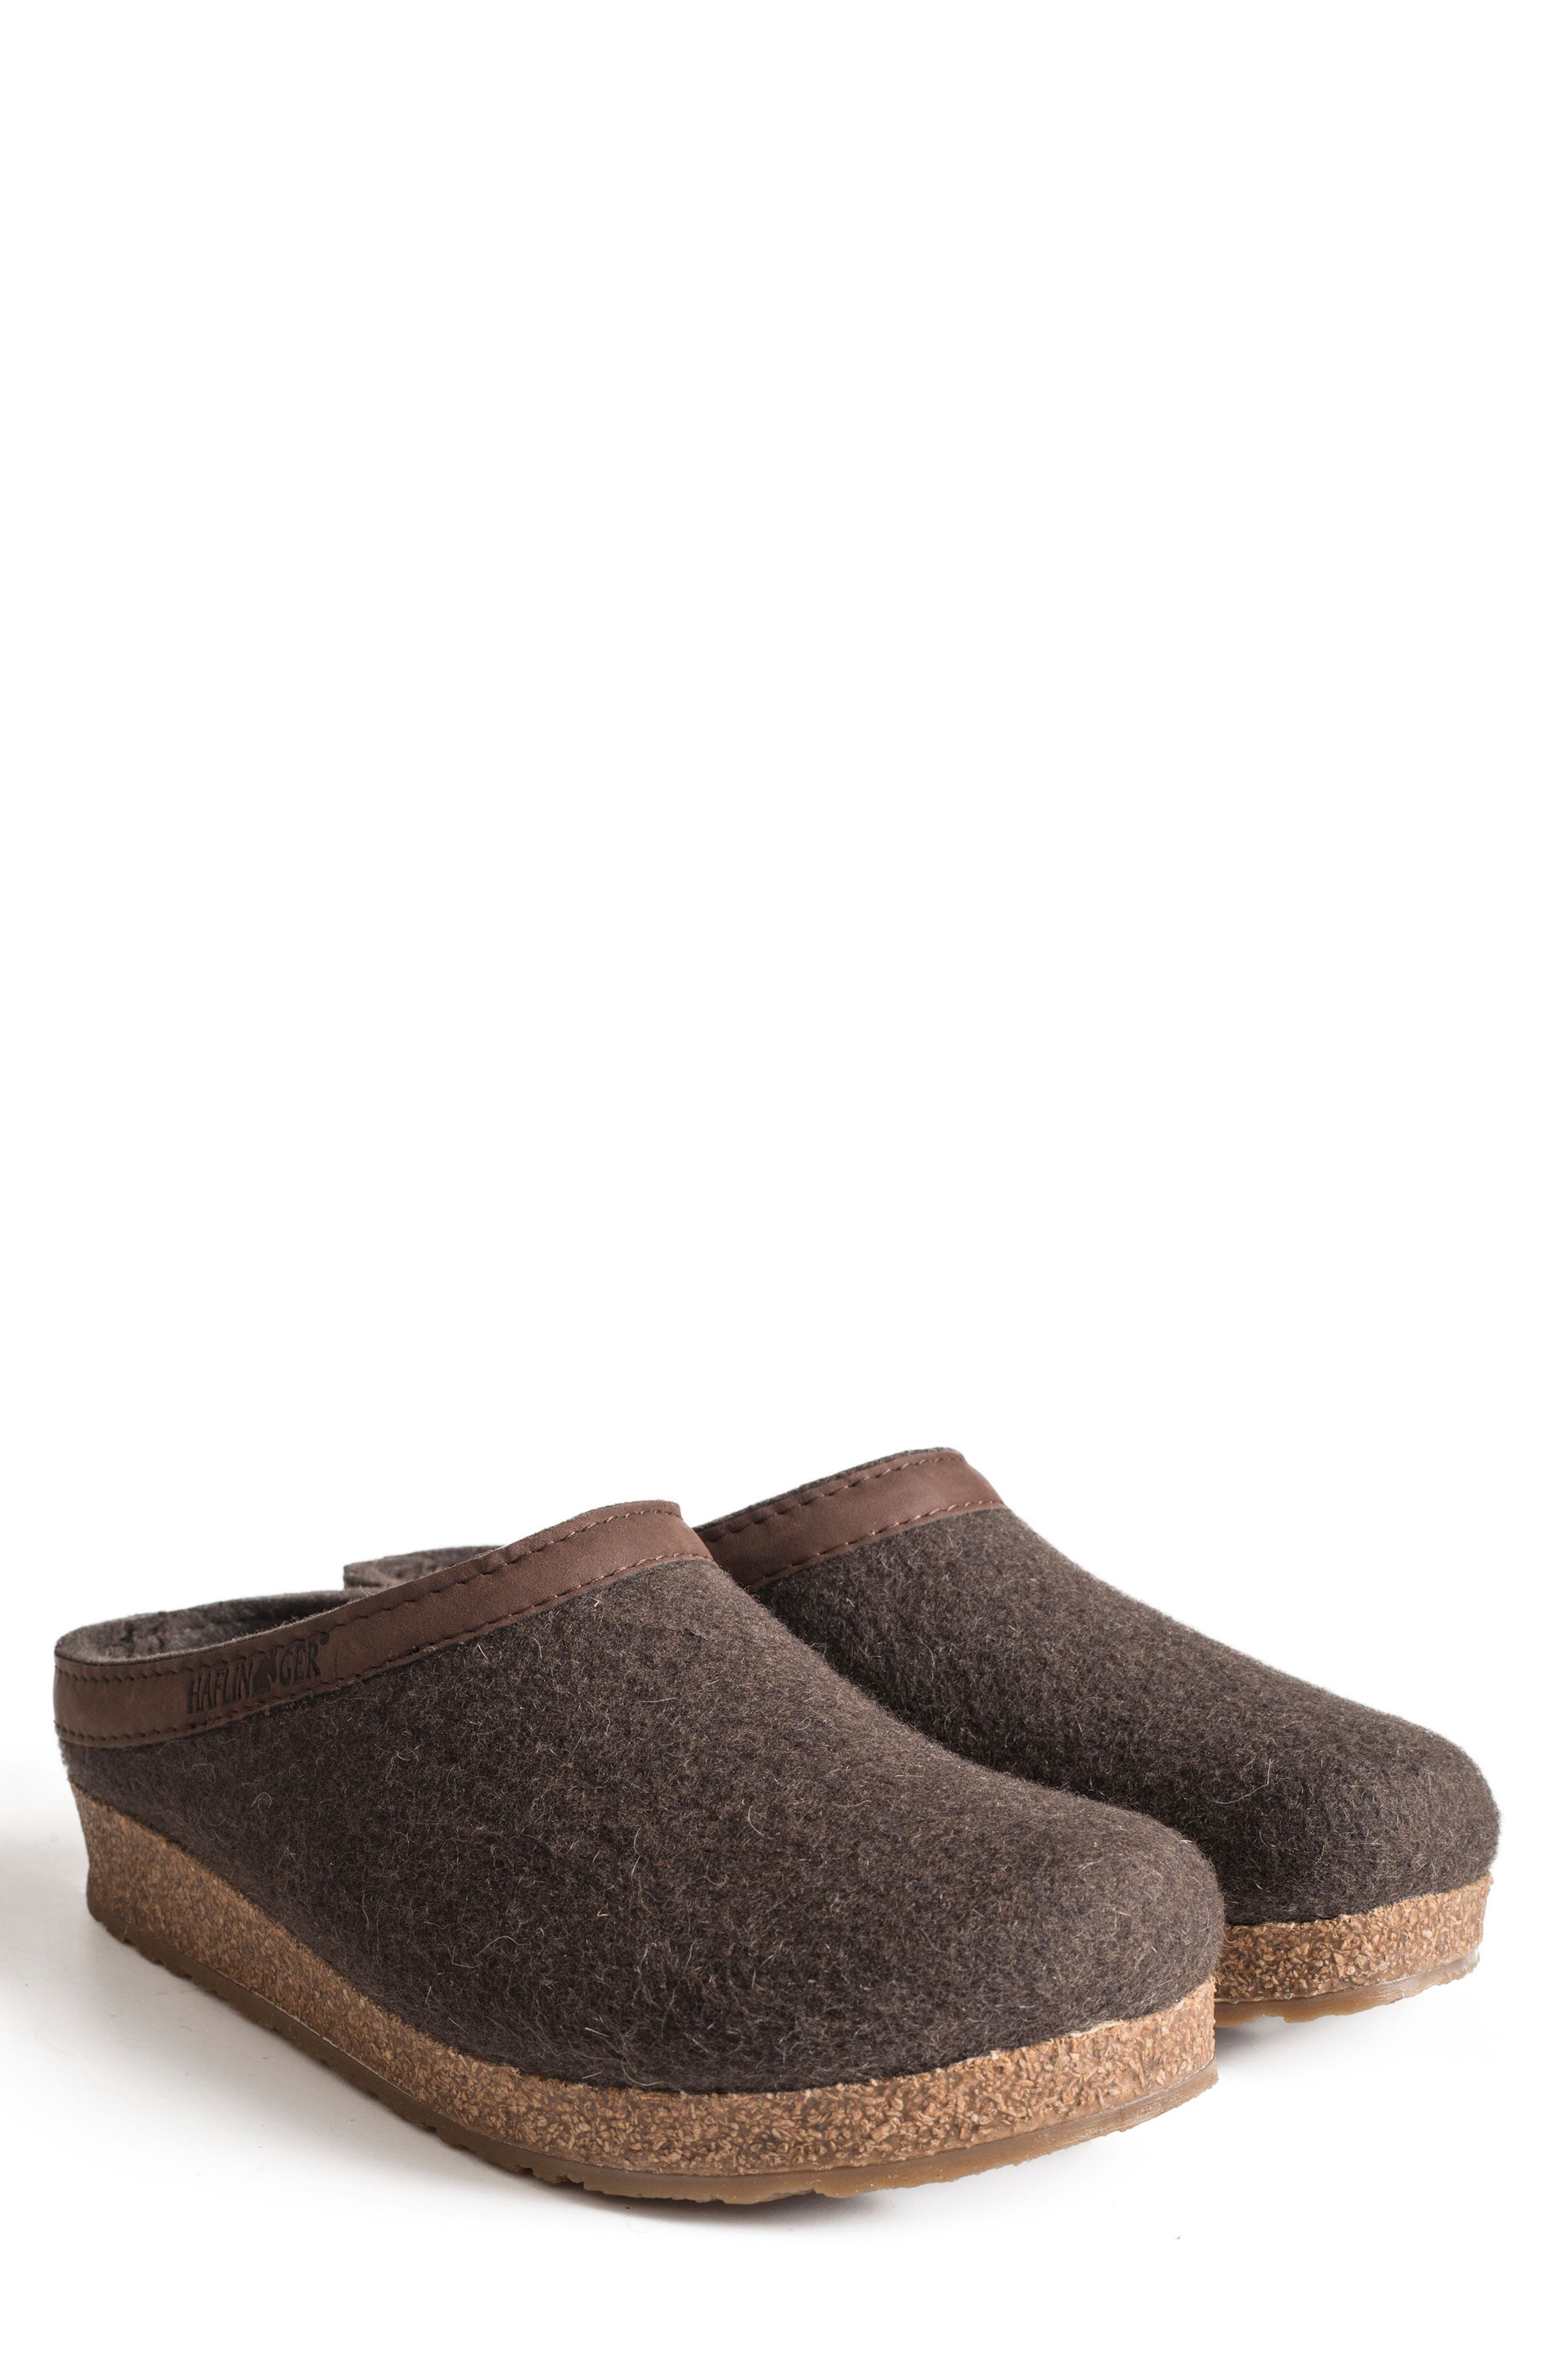 Grizzly Clog Slipper